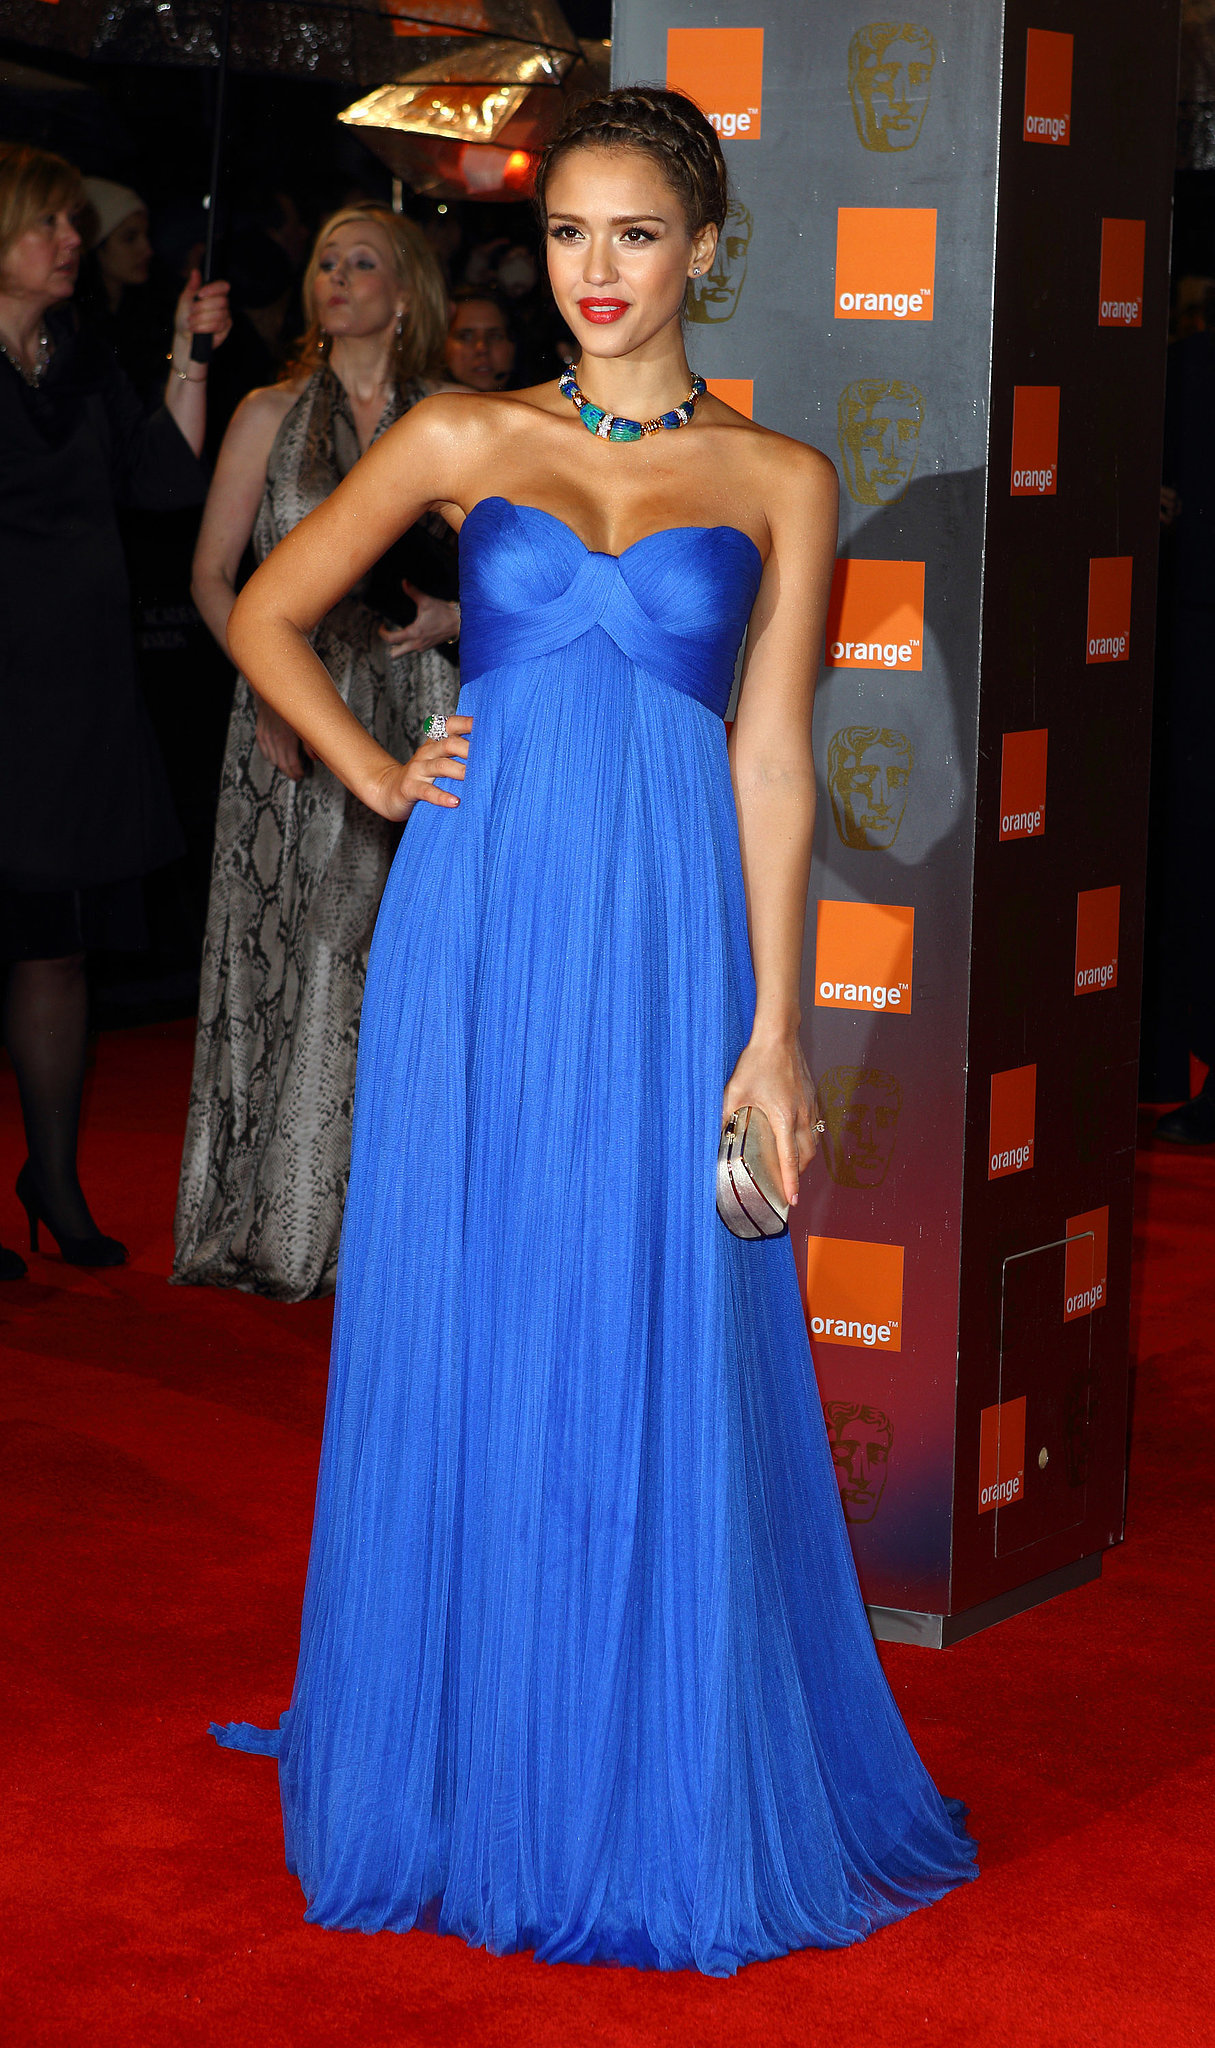 Jessica Alba in Versace at the British Academy Film Awards